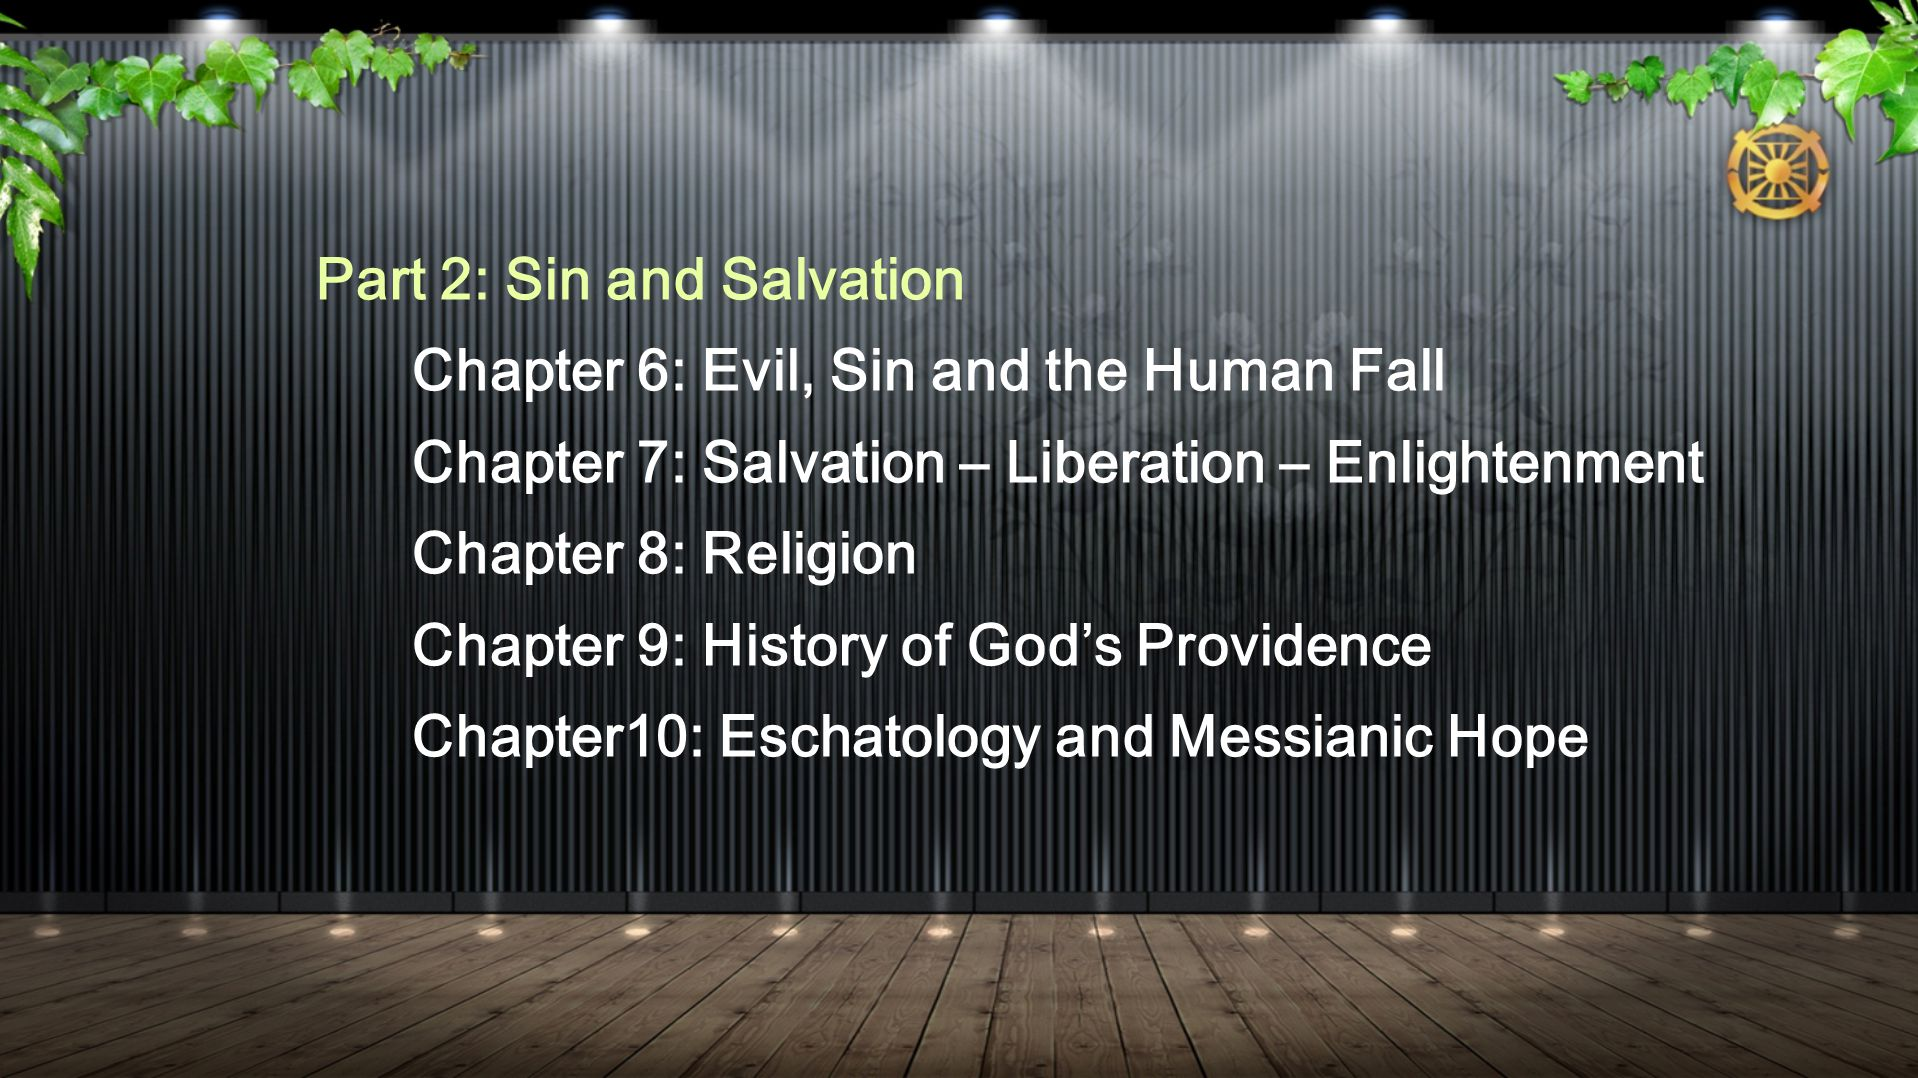 Part 2: Sin and Salvation Chapter 6: Evil, Sin and the Human Fall Chapter 7: Salvation – Liberation – Enlightenment Chapter 8: Religion Chapter 9: History of God's Providence Chapter10: Eschatology and Messianic Hope